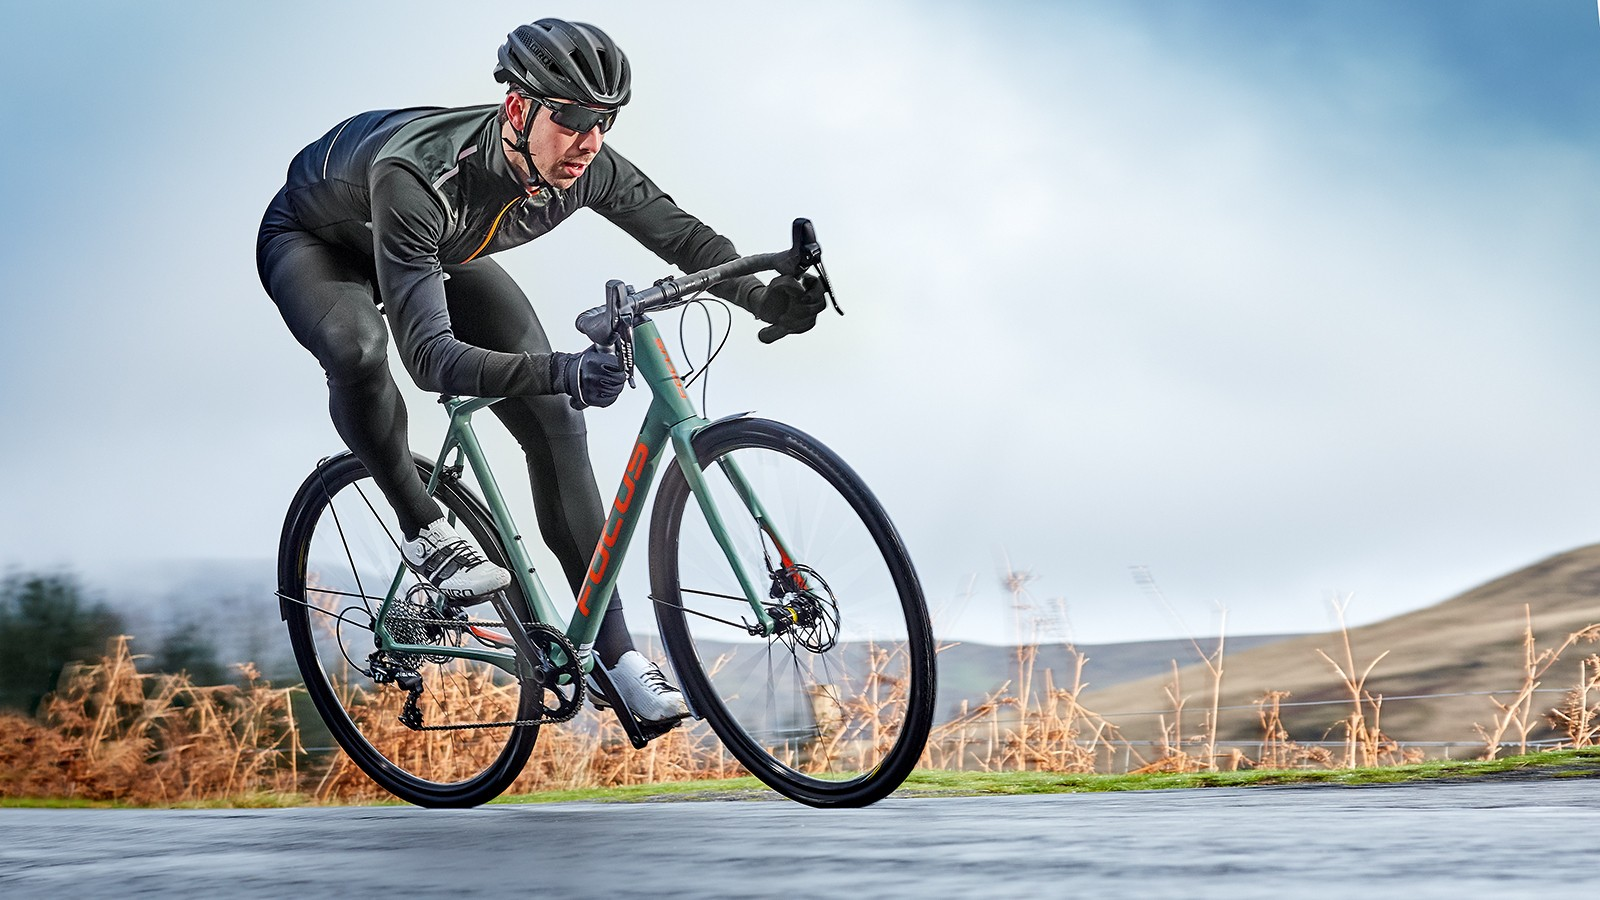 male cyclist riding green bike through country side